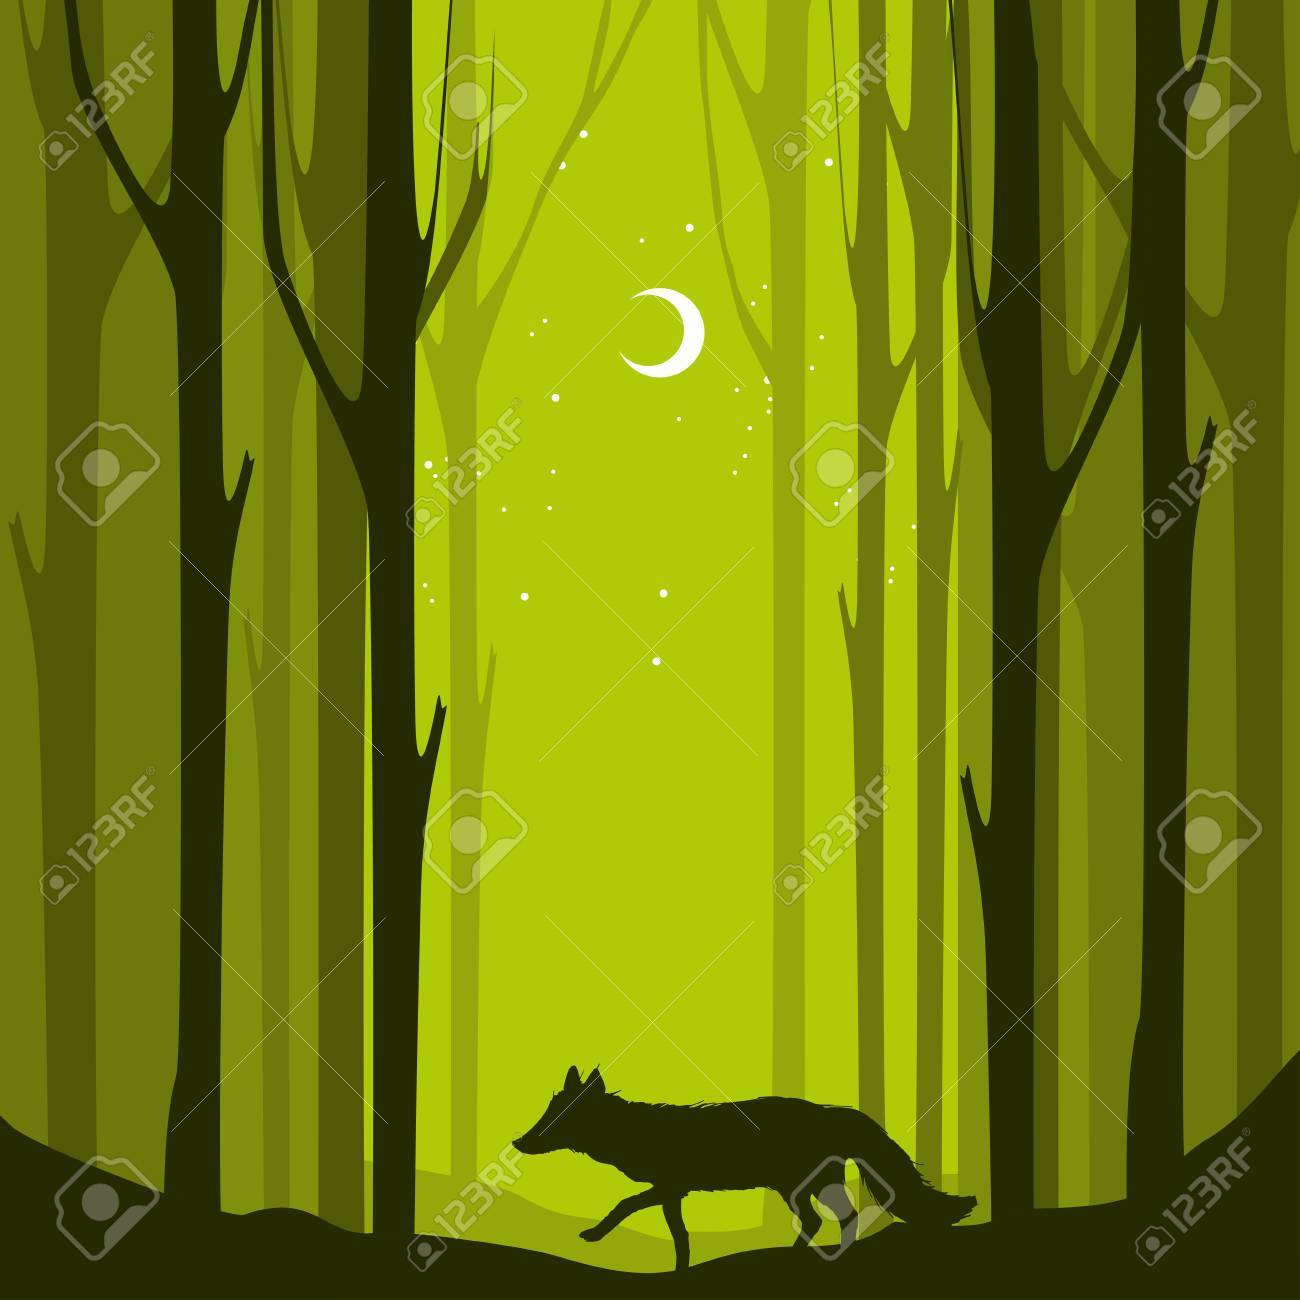 abstract banners of wild fox in forest with trunks of trees vector